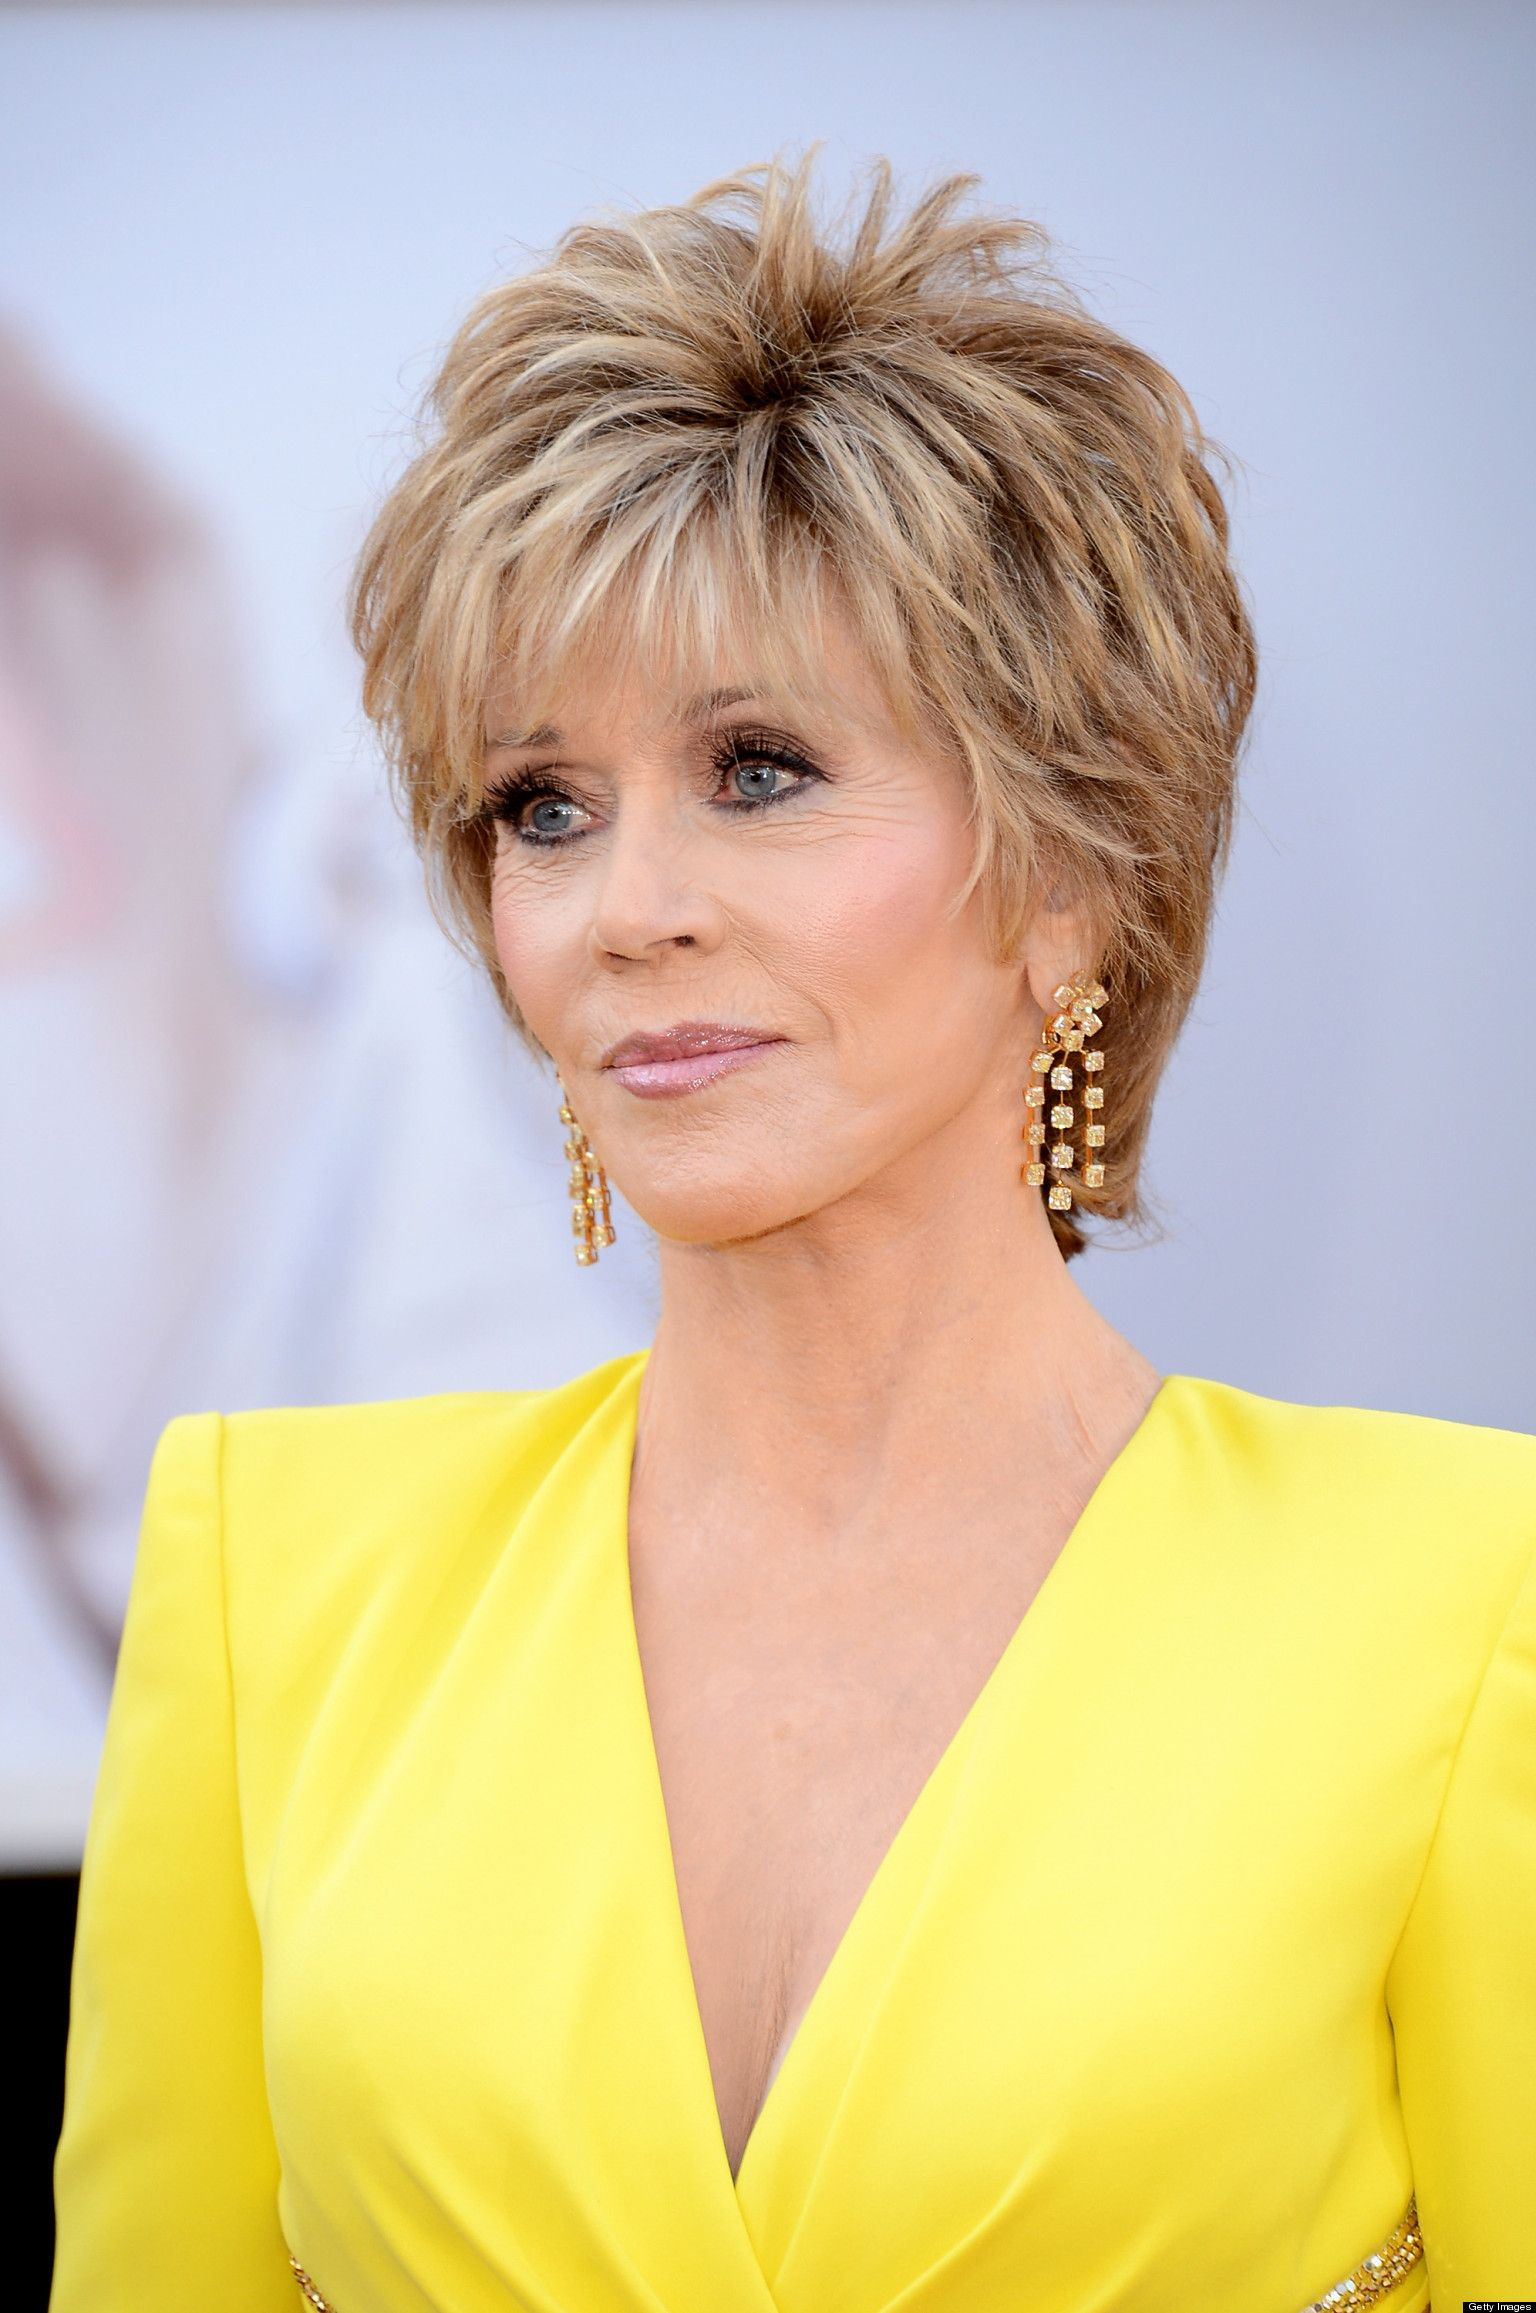 I.b Coiffure Jane Fonda Says She 39s Not Afraid To Die Coiffures